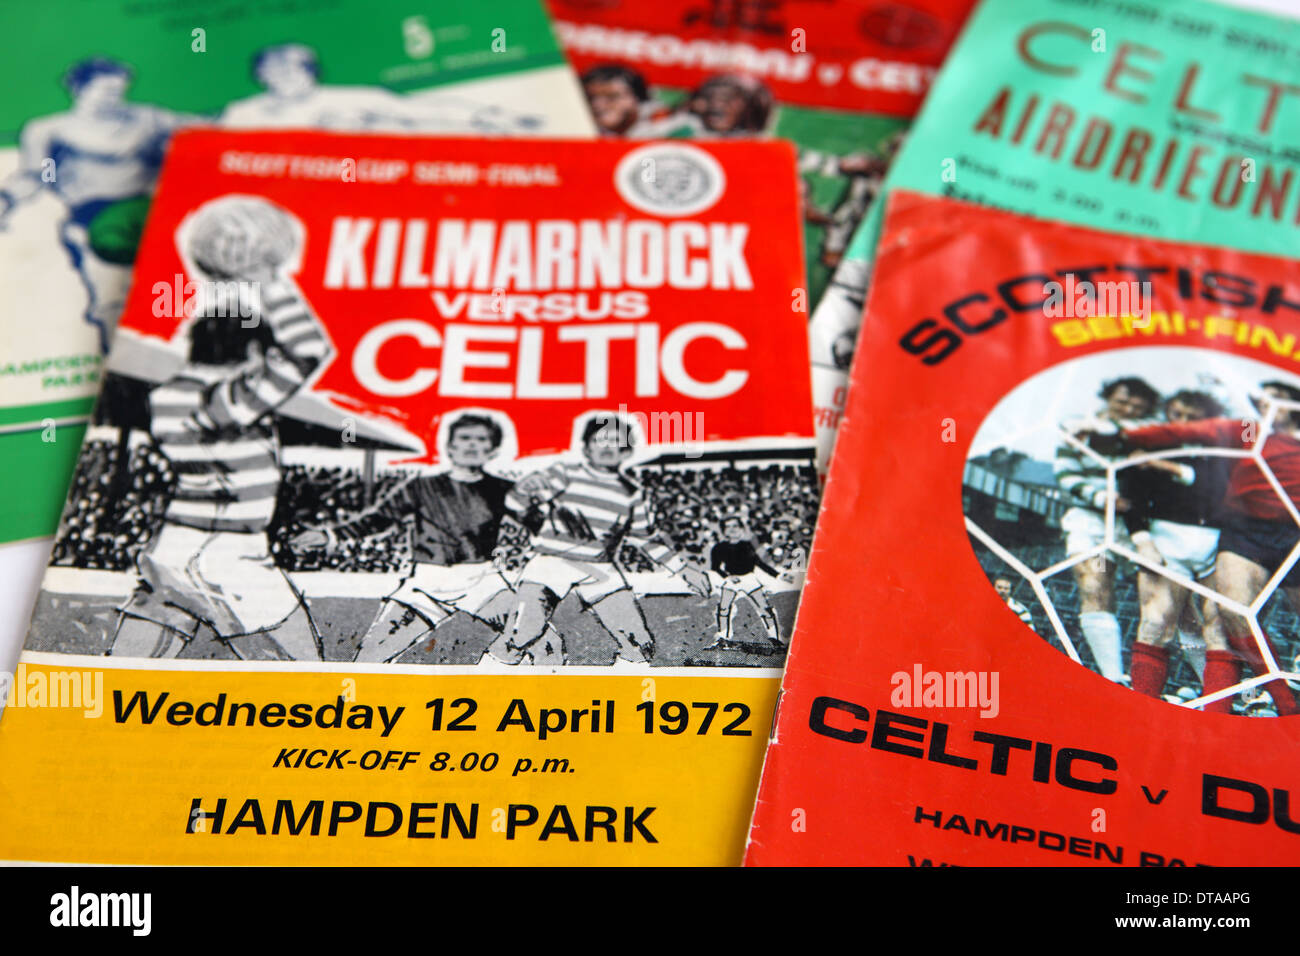 Scottish Cup Semi Final and Finals programmes from the 1970's - Stock Image